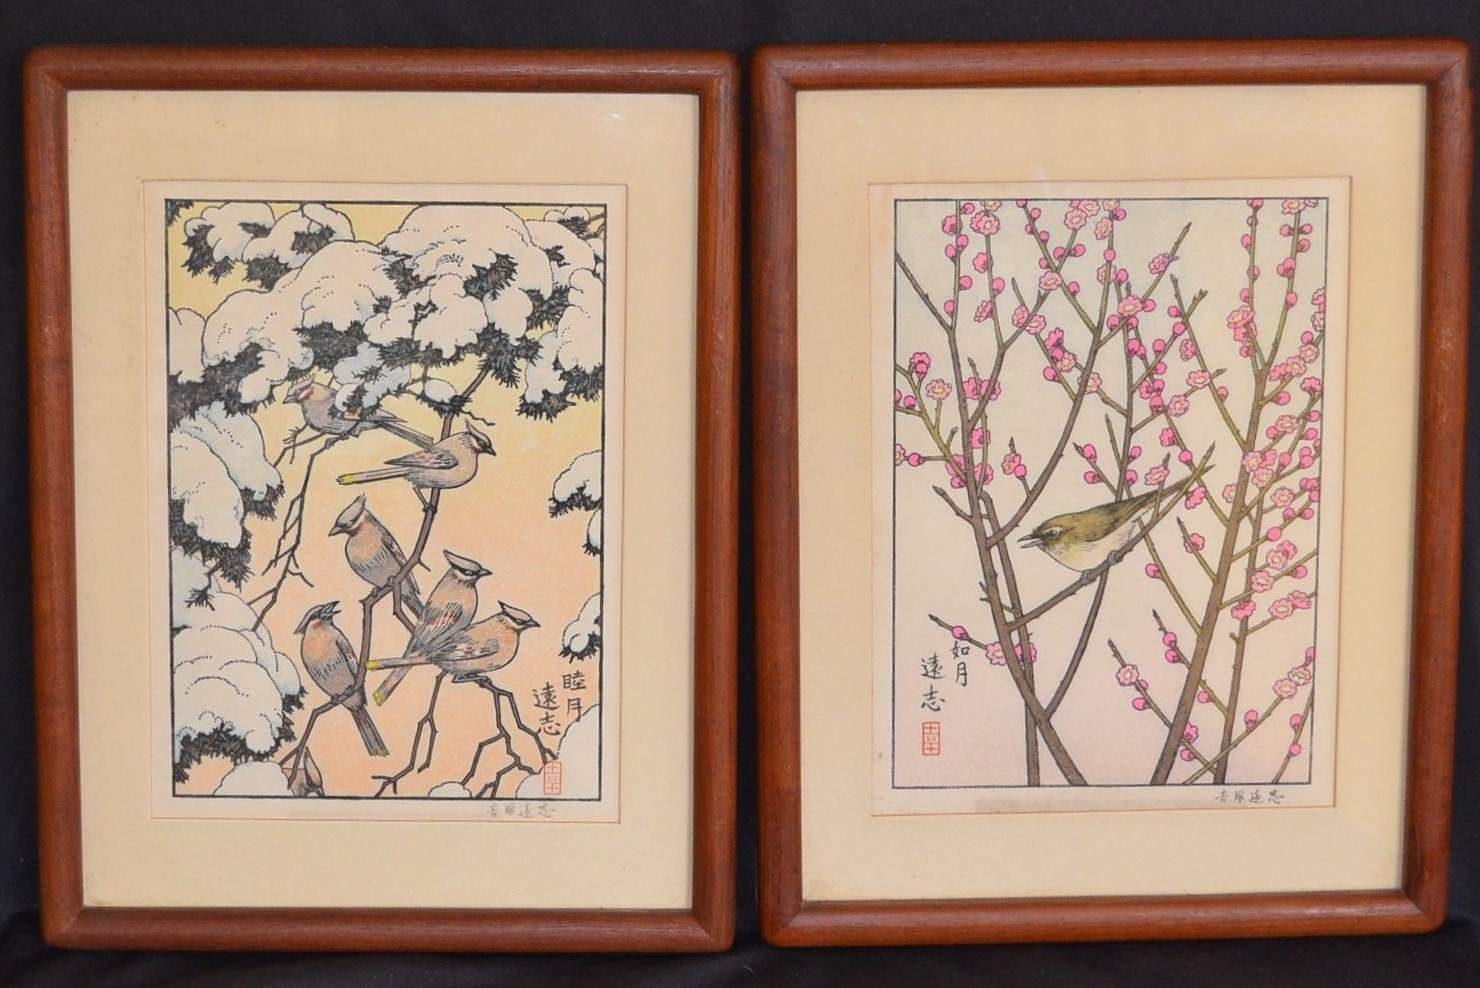 TOSHI YOSHIDA: THE FLOWERS AND BIRDS OF THE ORIENTAL YEAR - January / February